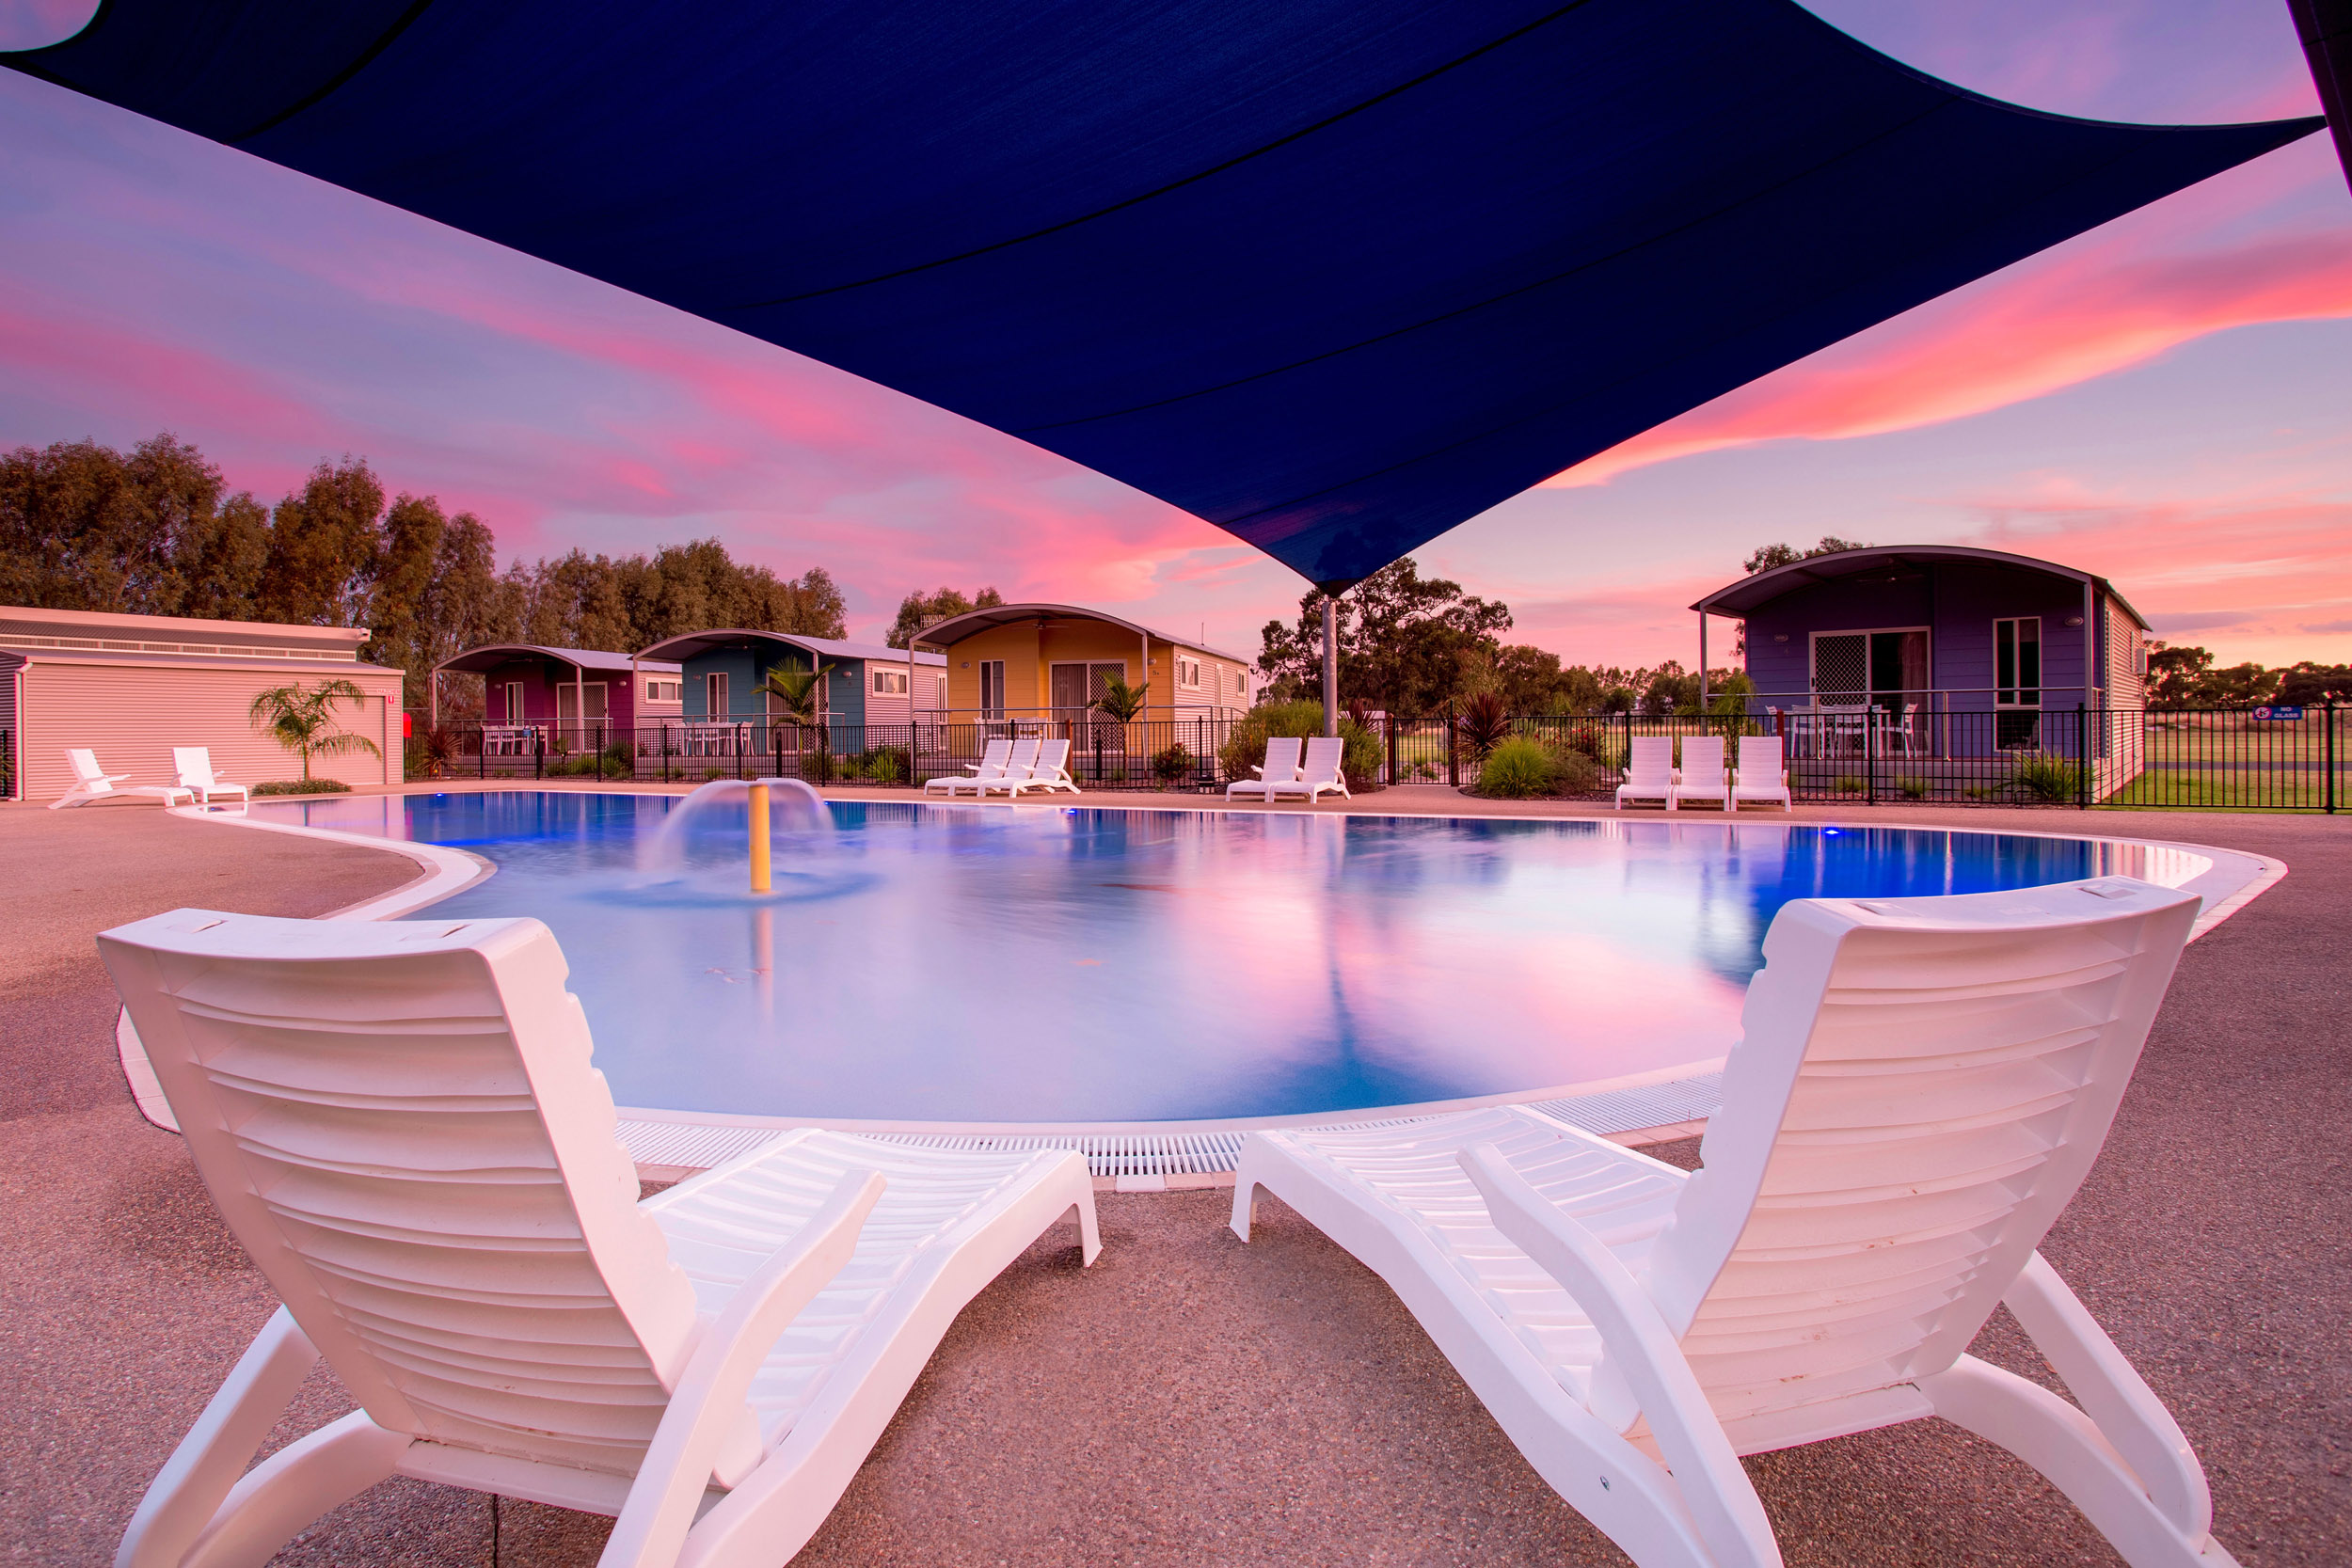 poolside-at-dusk-holiday-park-resort-photography.jpg